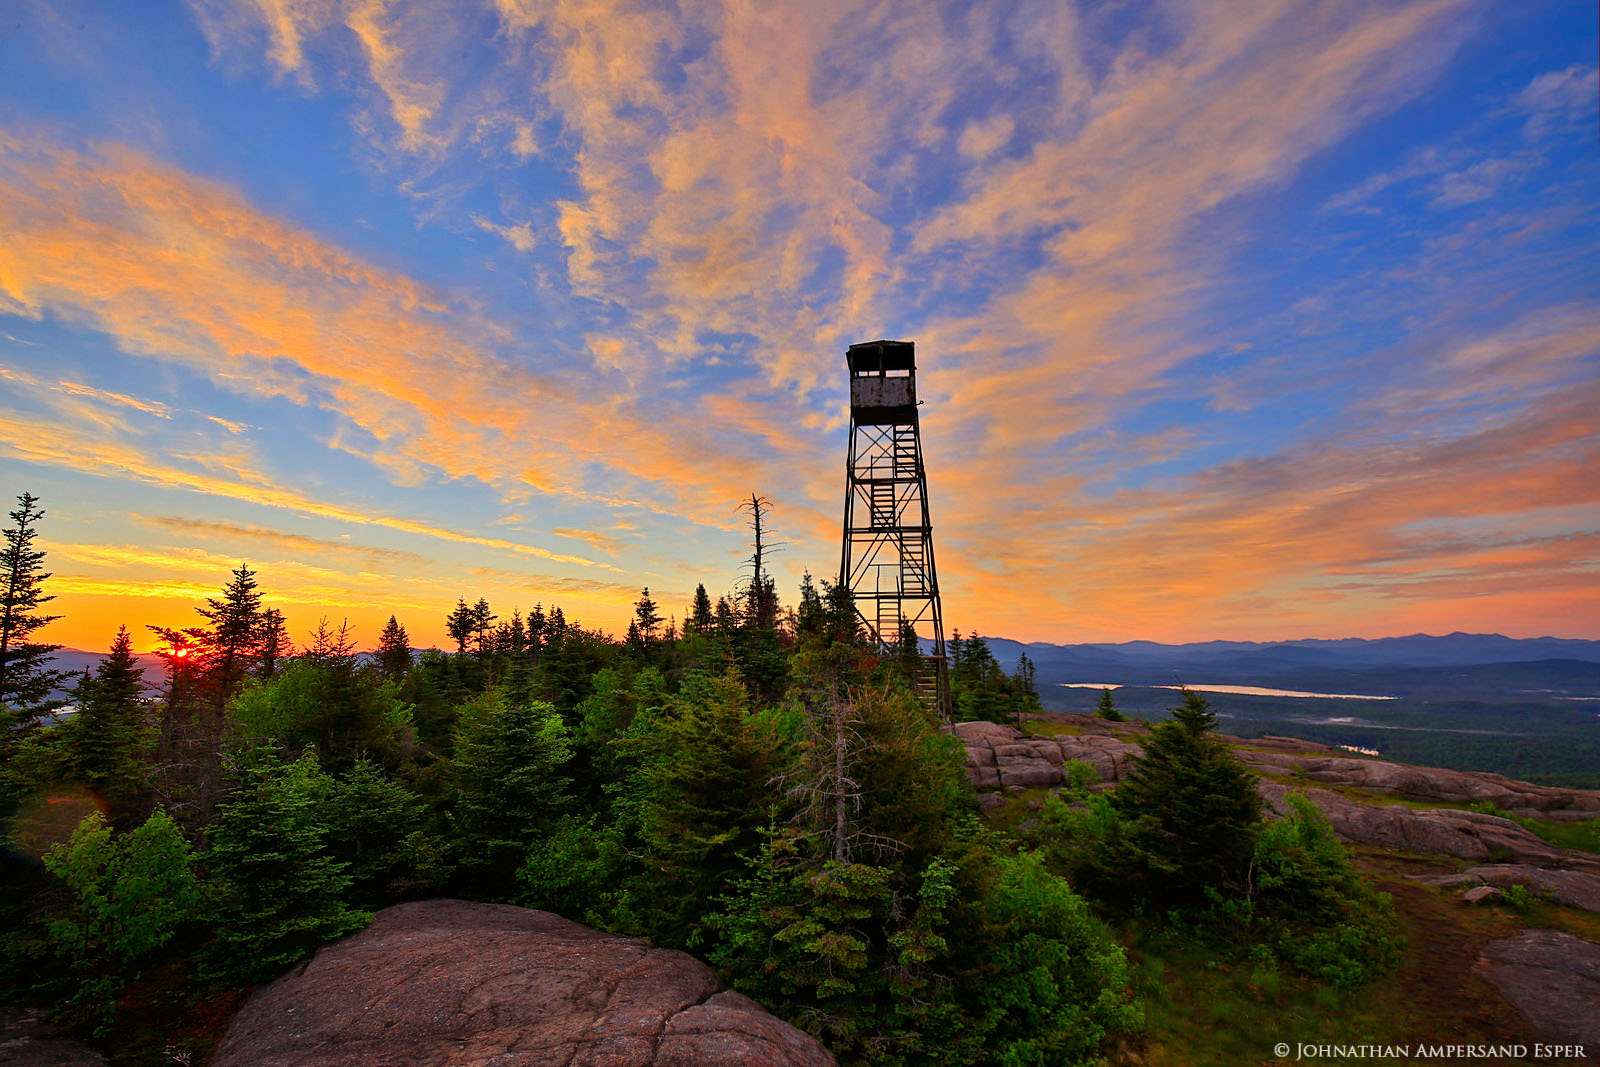 St Regis Mt,firetower,St. Regis Mt.,St Regis Mountain,St Regis Mt firetower,summit,sunrise,summer,2016,St Regis Wilderness,Adirondack Park,Adirondack Mountains,June,Johnathan Esper,Adirondacks,Adirond, photo